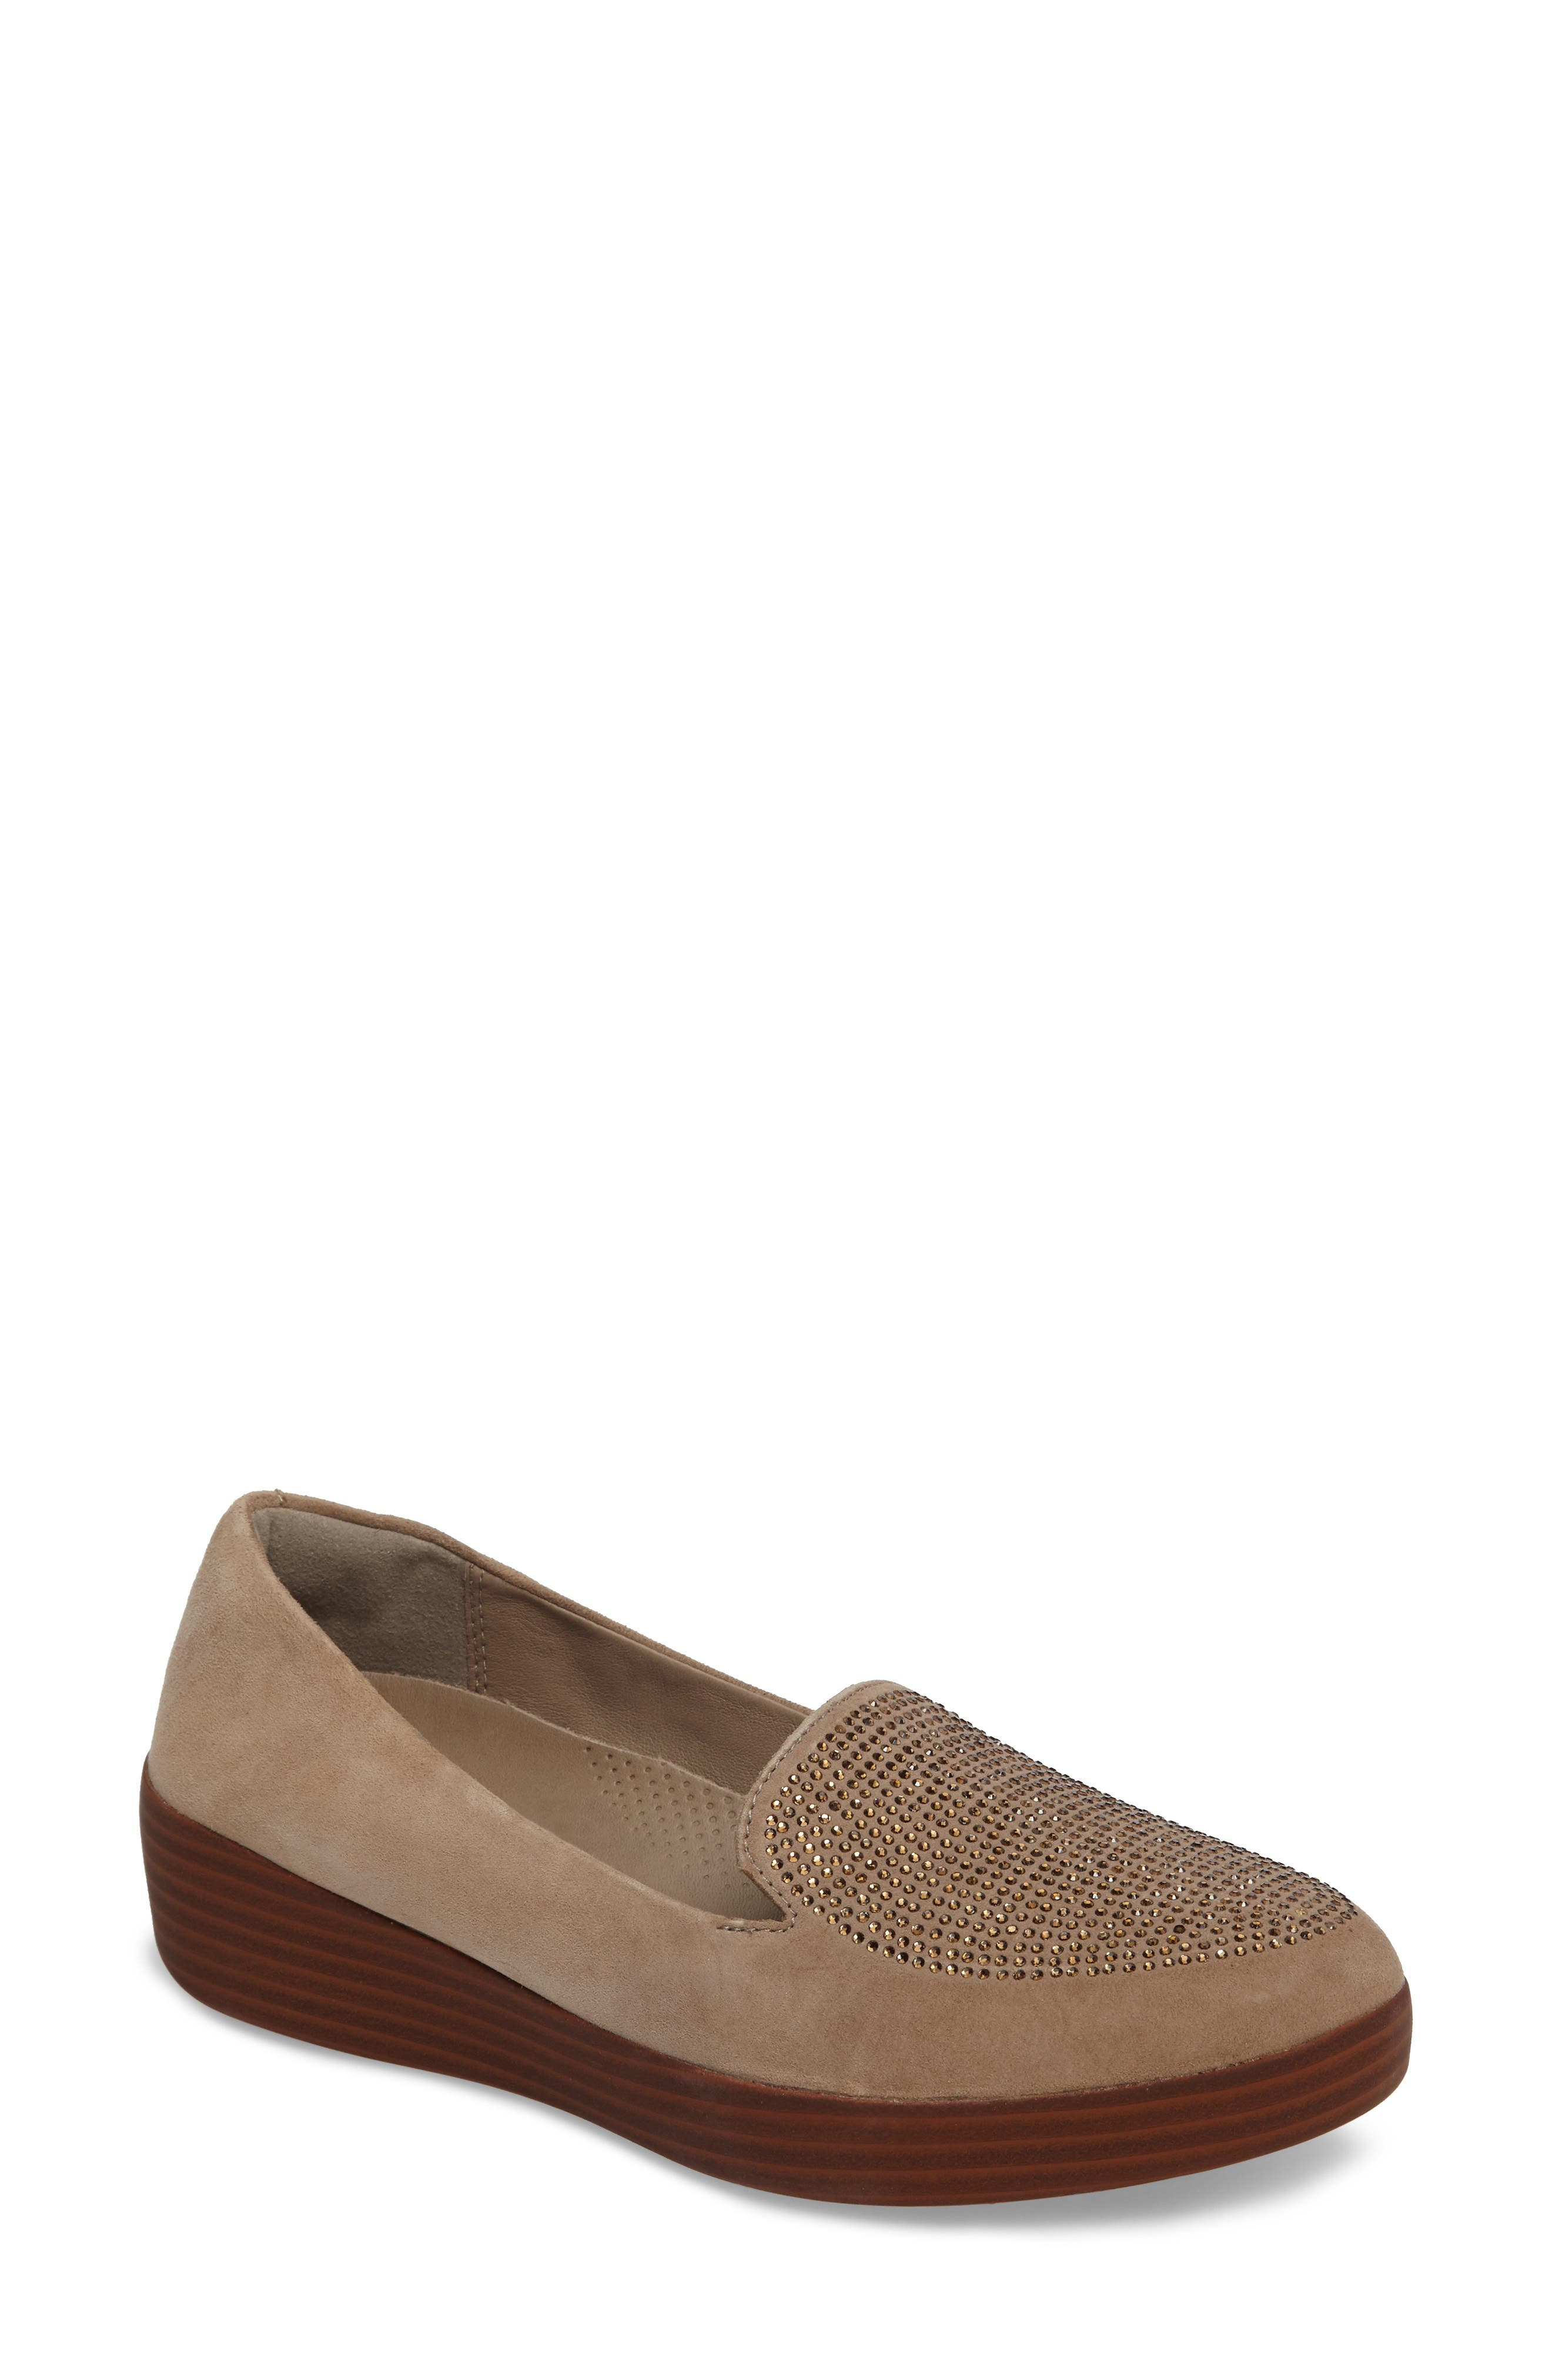 Sparkly Sneakerloafer Slip-On,                         Main,                         color, Desert Stone Suede